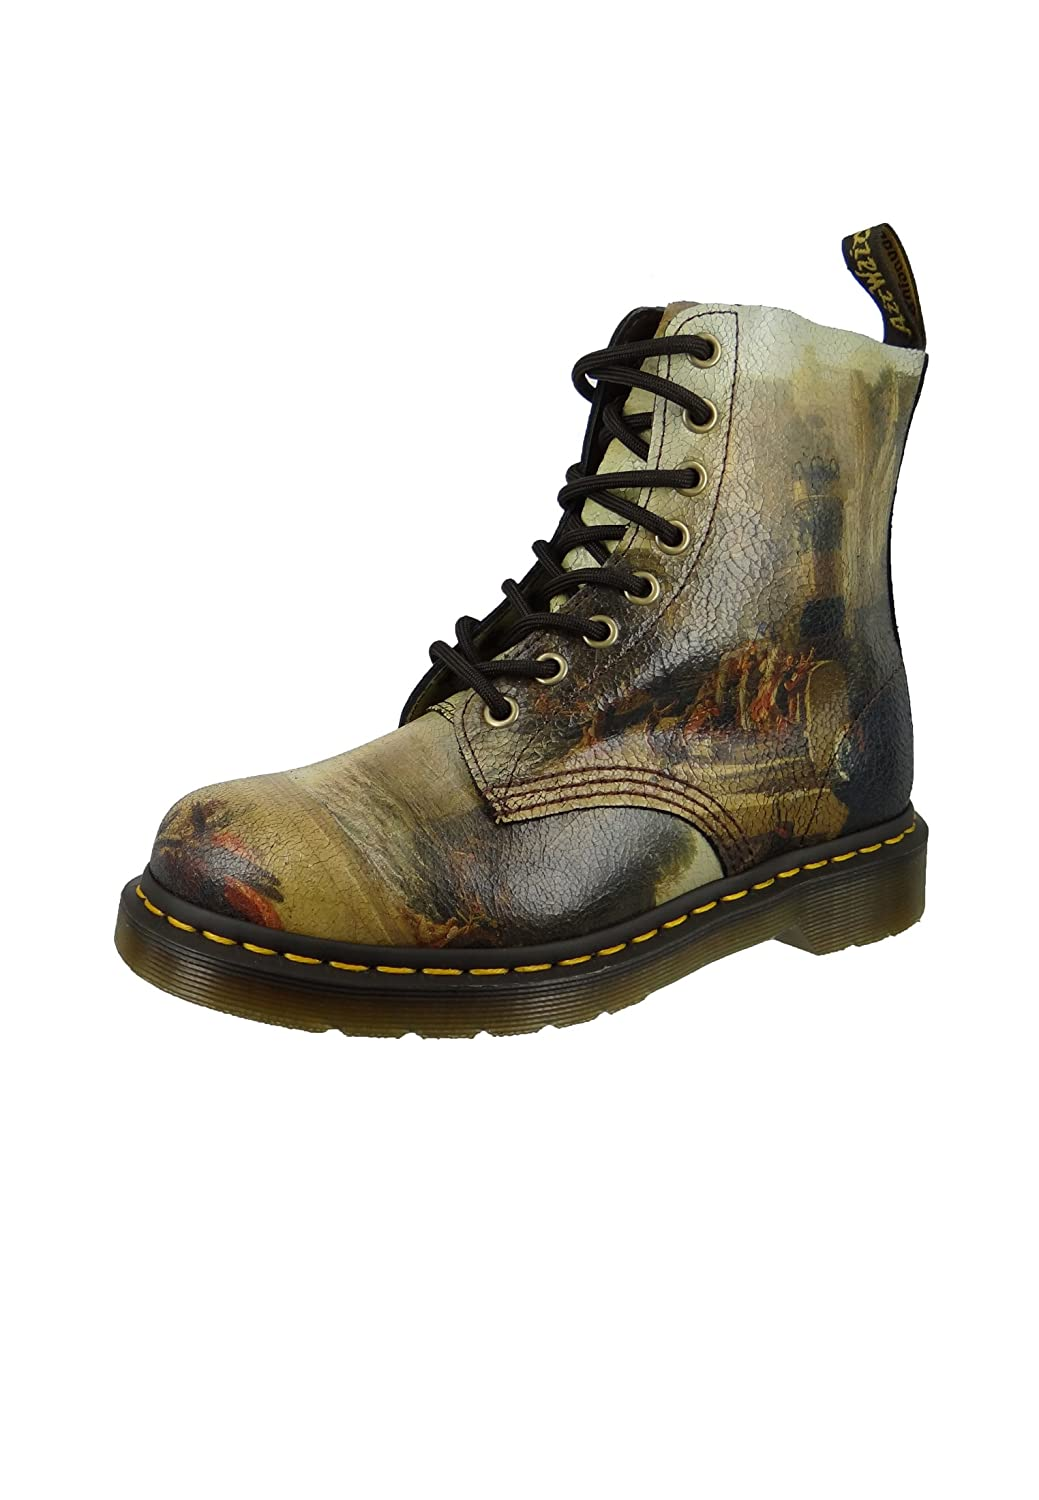 Dr. Martens Unisex-Adult Pascal 8 Eye Boot B079JXHHR4 8.5 M US Women / 7.5 M US Men|Multi